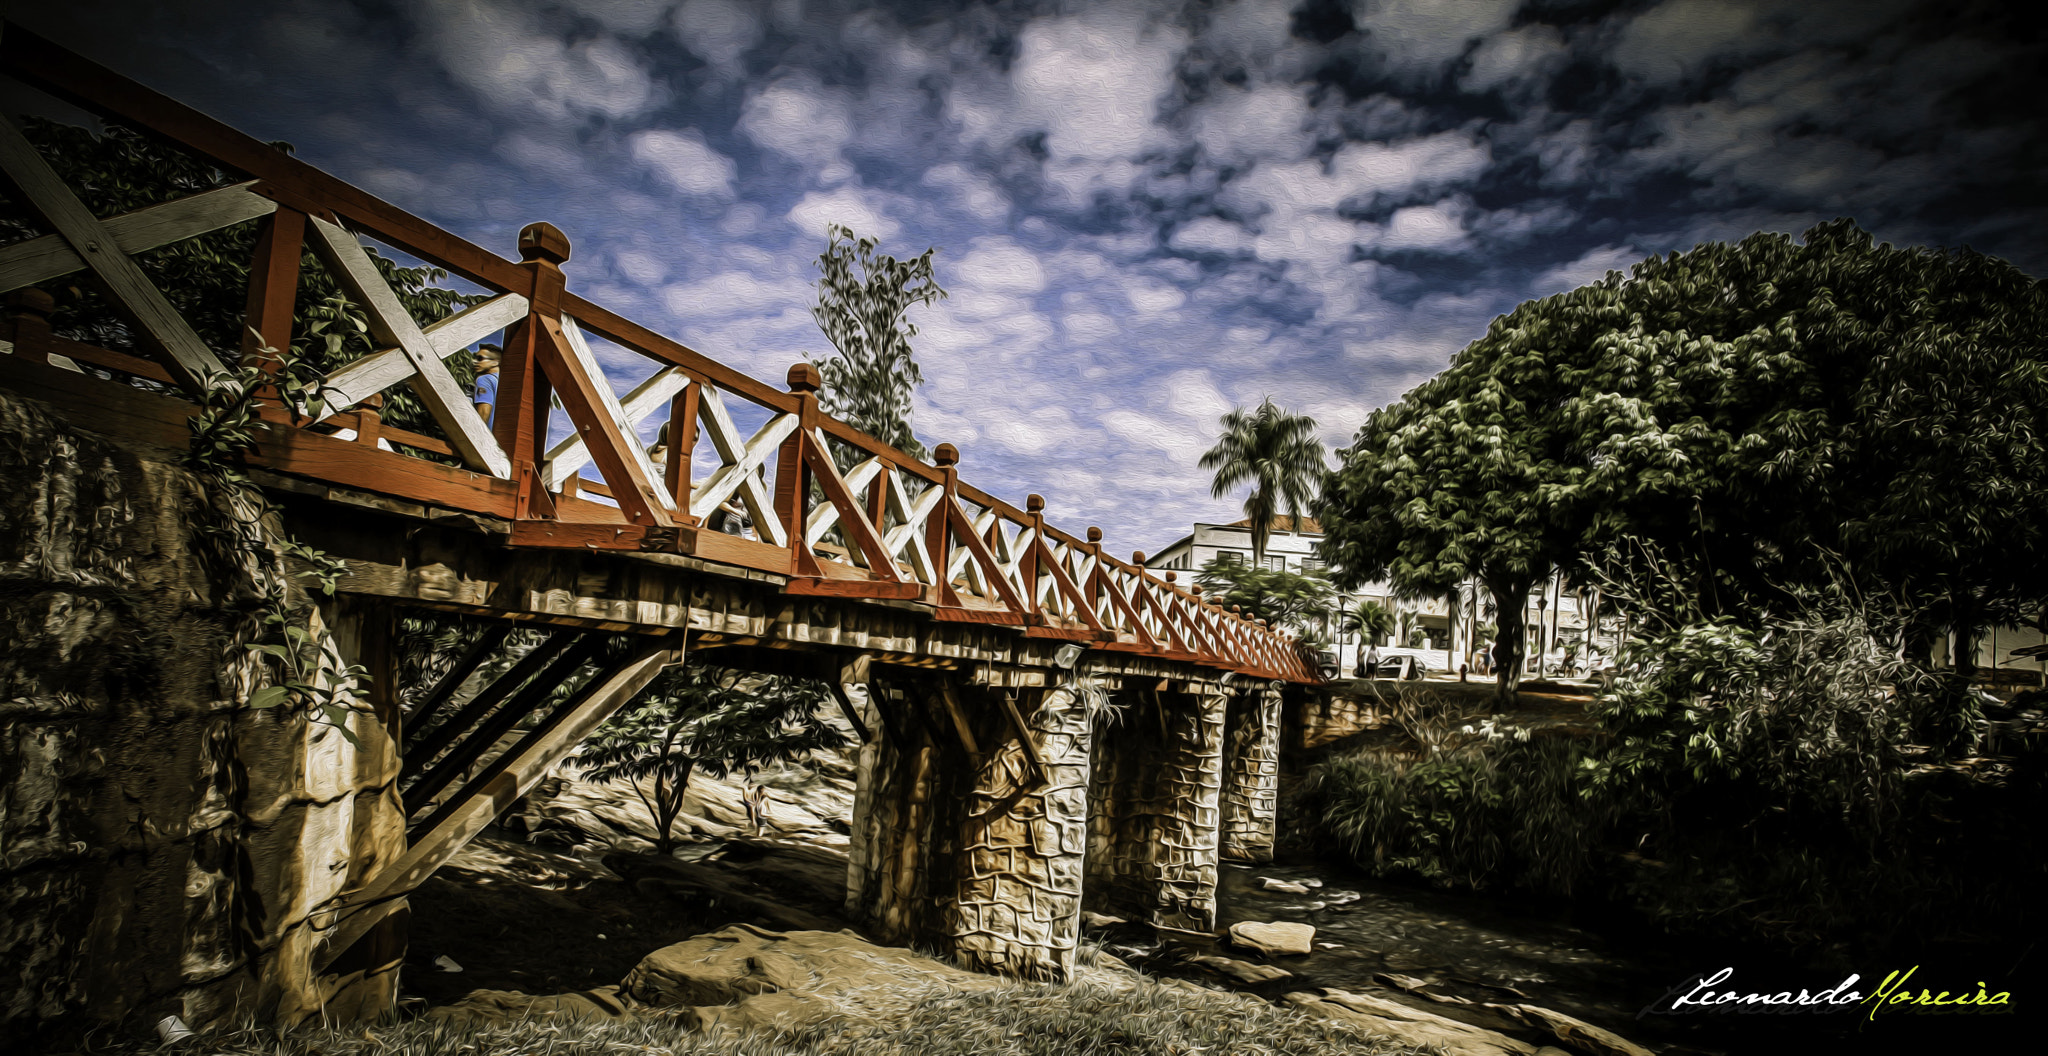 Photograph Ponte Pirinopolis  by LEONARDO  MOREIRA on 500px